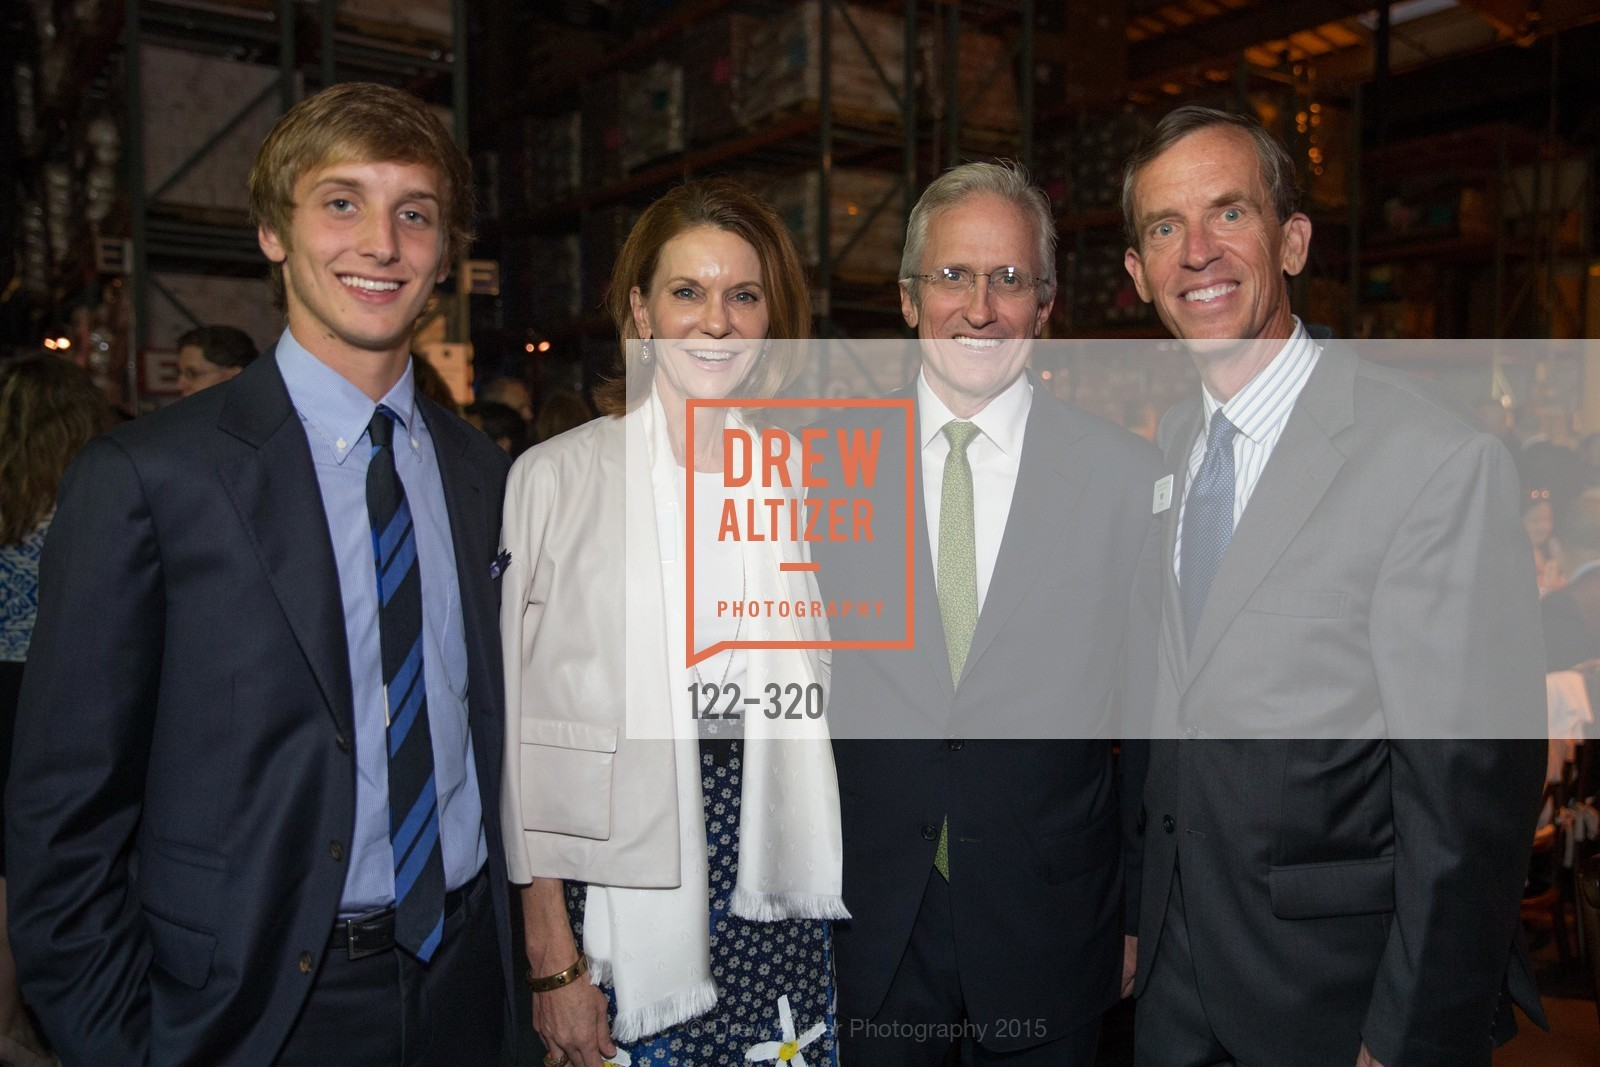 Wyeth Coulter, Penny Coulter, Jim Coulter, Tim Geraghty, SF - Marin Food Bank Presents ONE BIG TABLE, SF- Marin Food Bank. 900 Pennsylvania Ave, September 26th, 2015,Drew Altizer, Drew Altizer Photography, full-service agency, private events, San Francisco photographer, photographer california